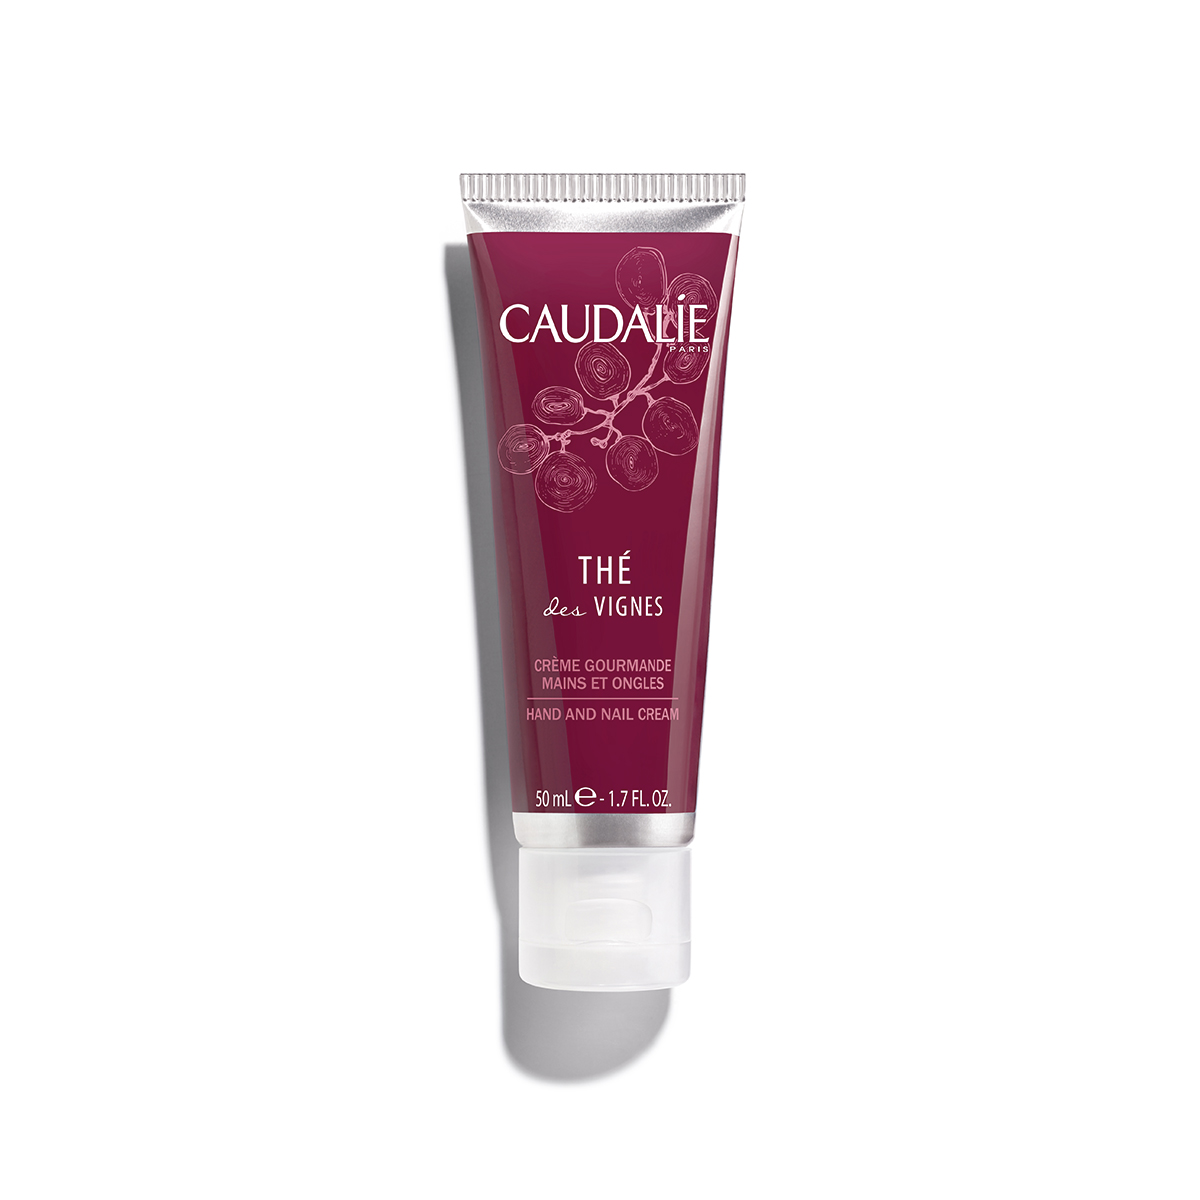 Thé des Vignes Hand and Nail Cream